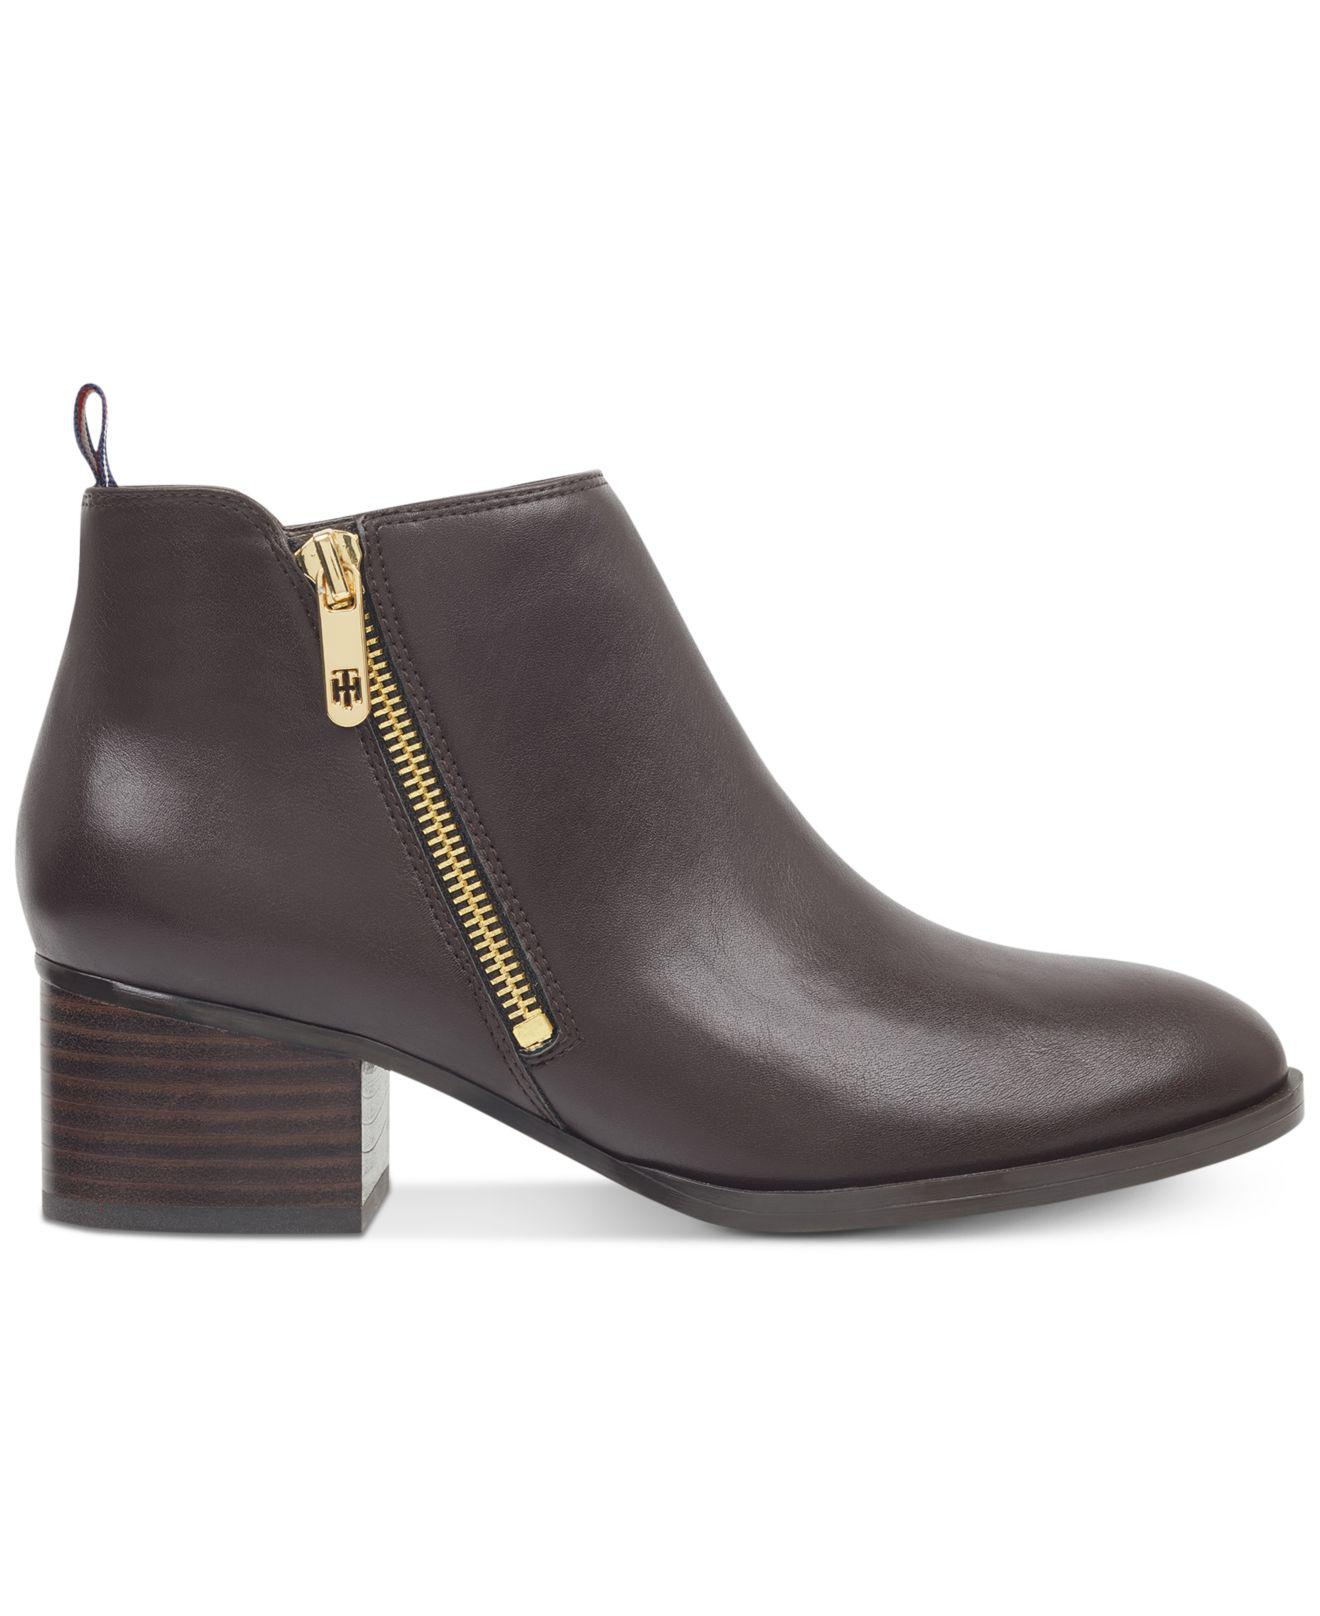 3596bd0e630b Lyst - Tommy Hilfiger Ruthee Block-heel Ankle Booties in Brown